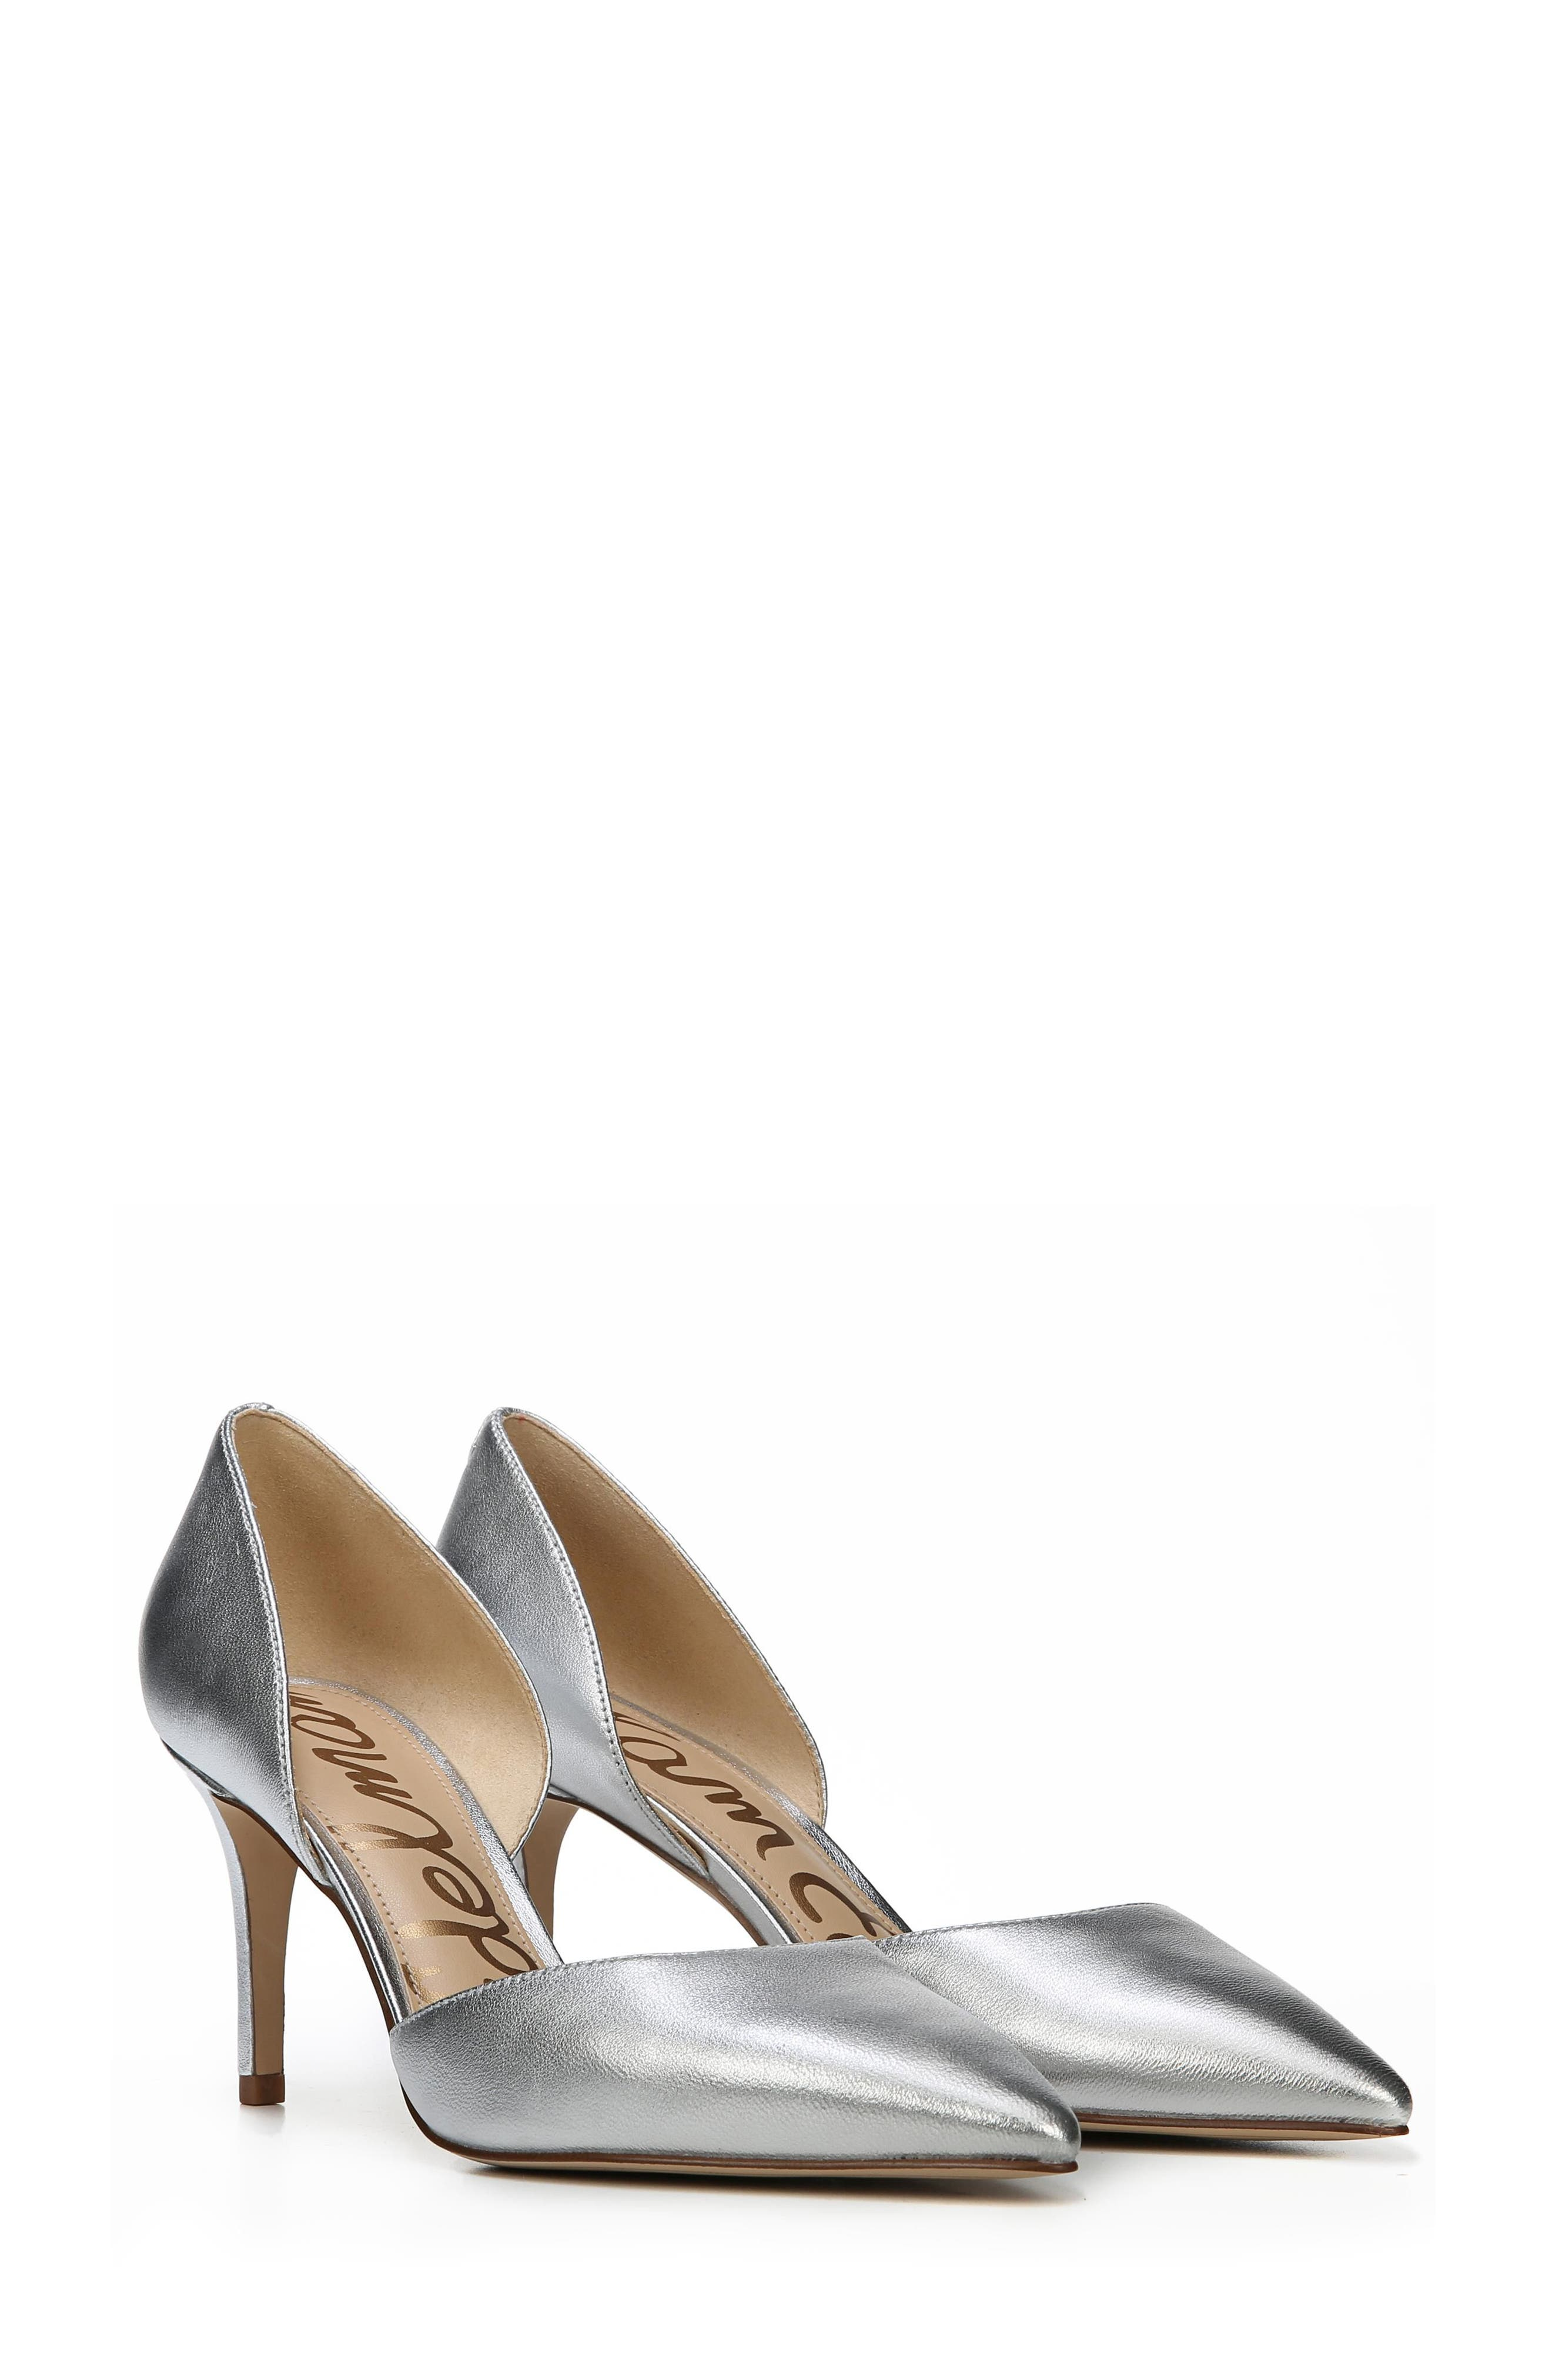 'Telsa' d'Orsay Pointy Toe Pump,                             Alternate thumbnail 8, color,                             040